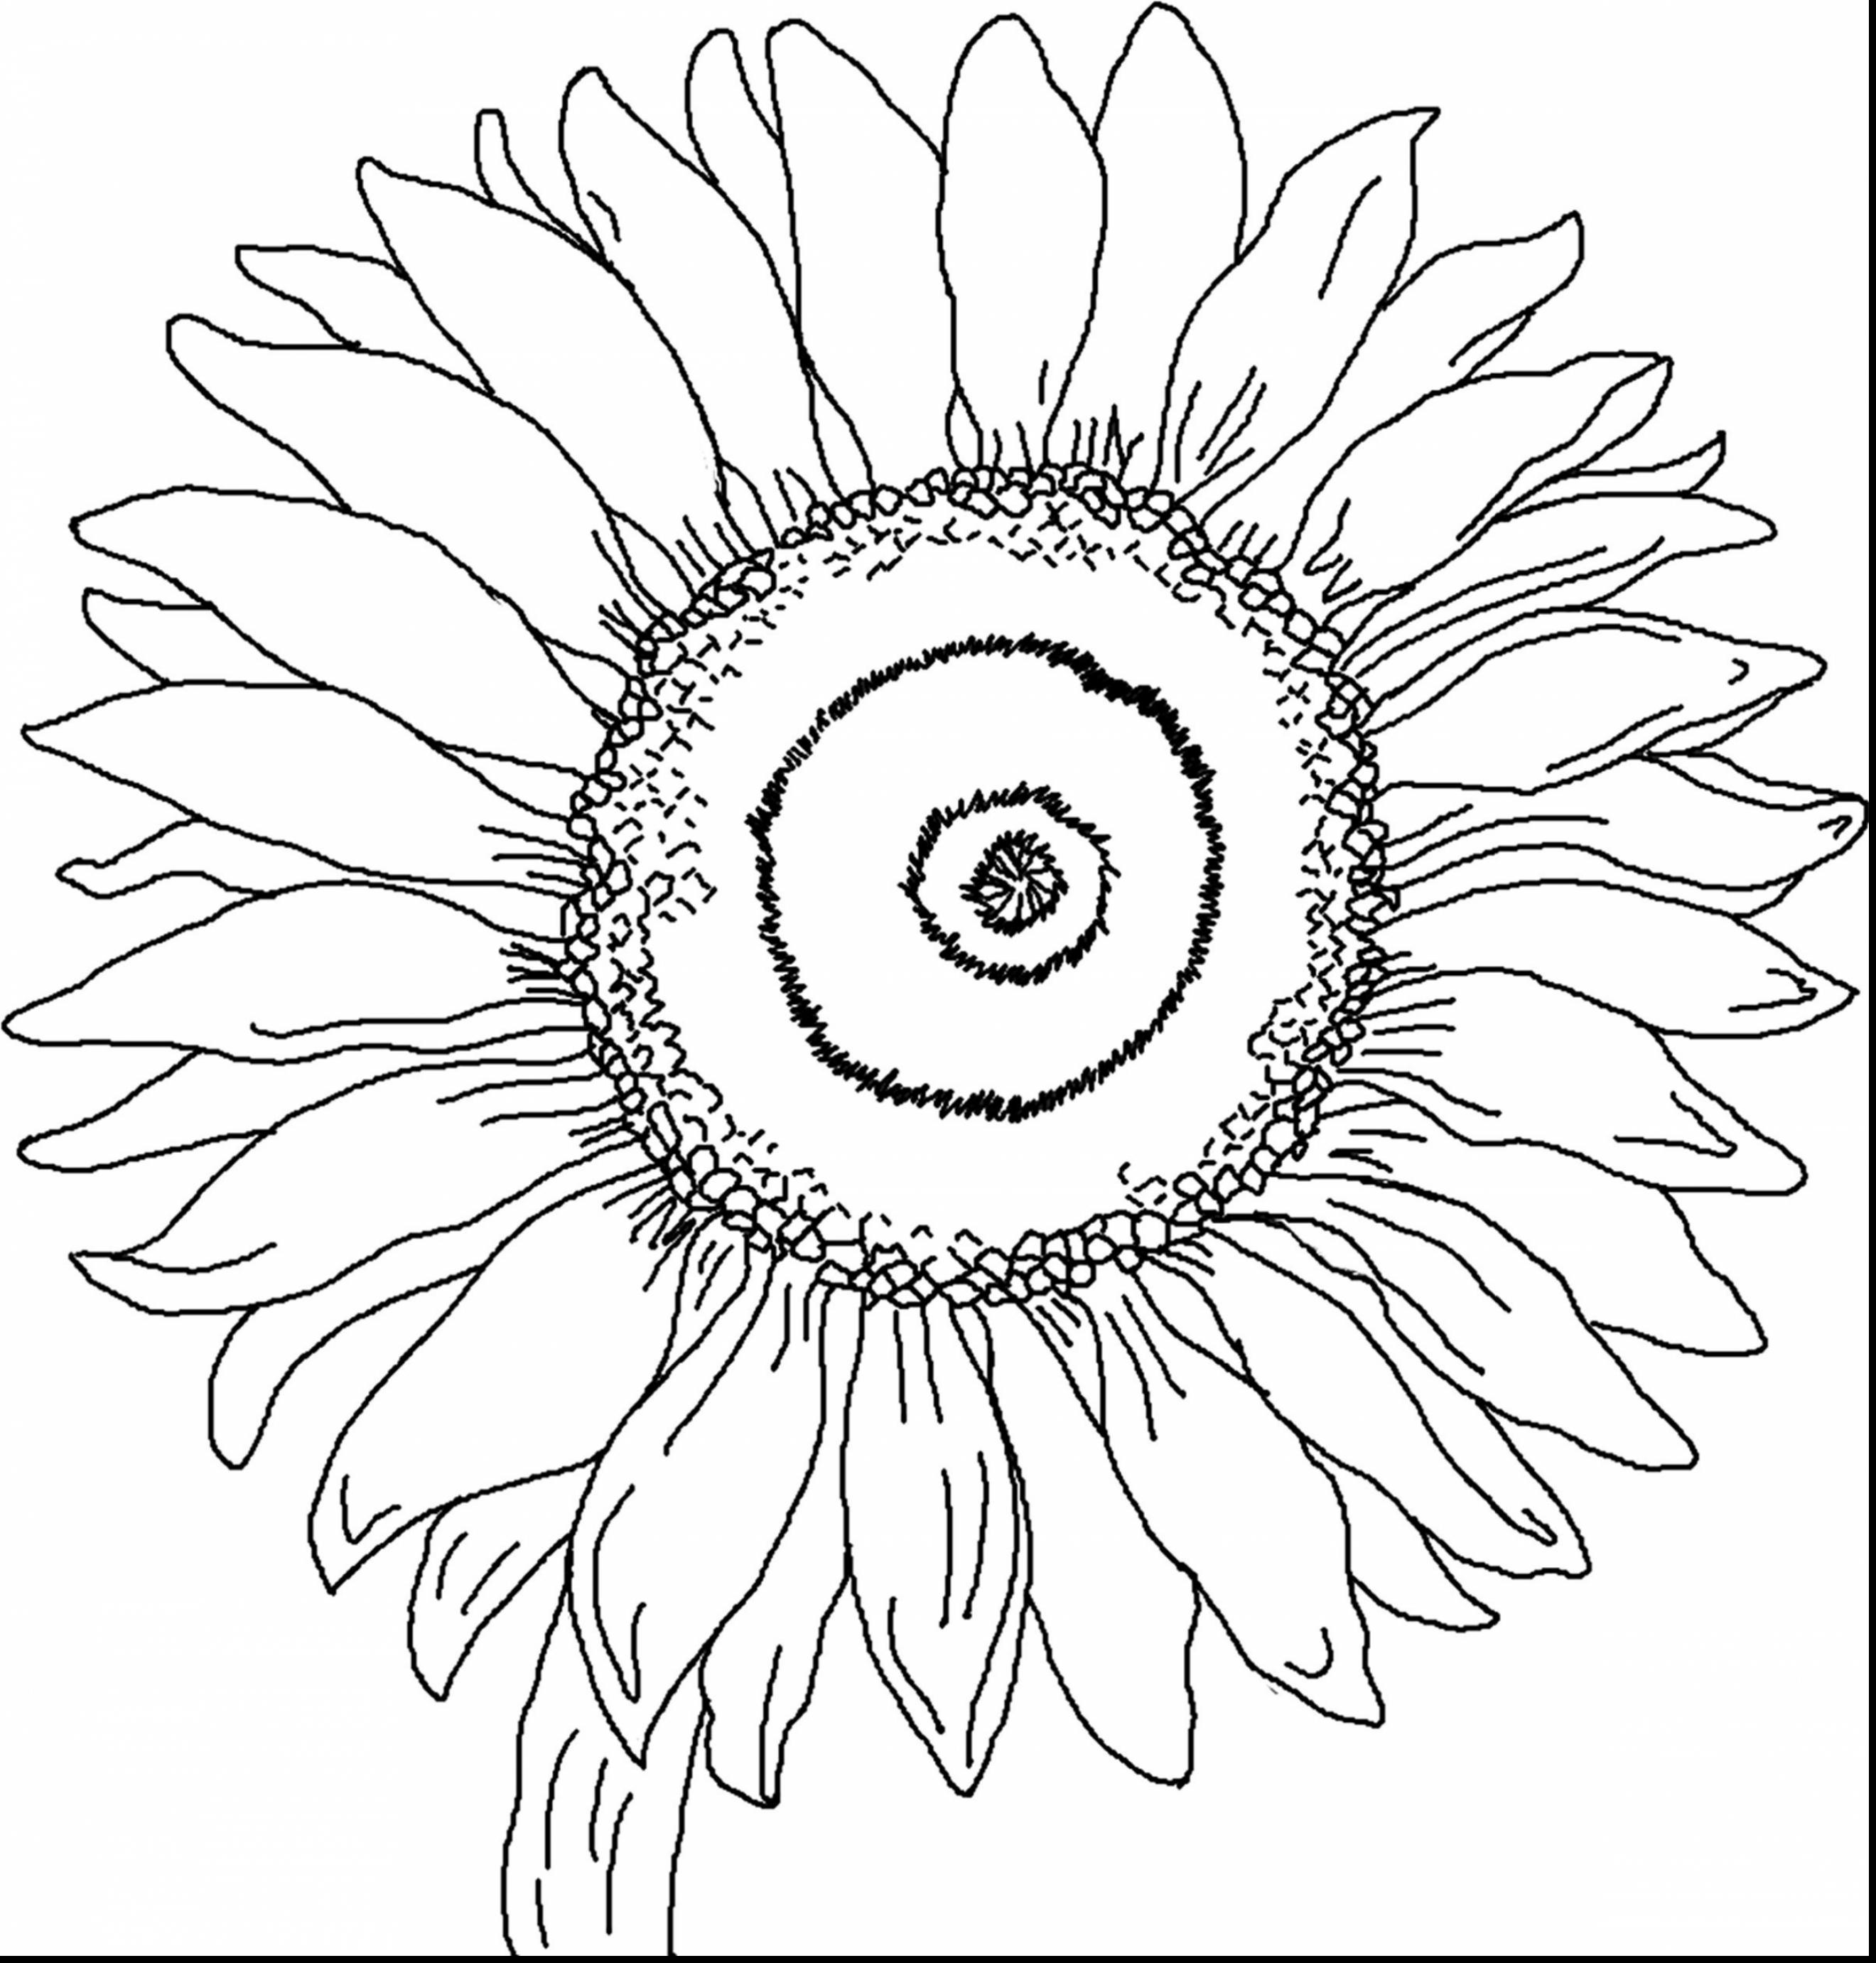 Sunflower Drawing Template at GetDrawings.com   Free for personal ...